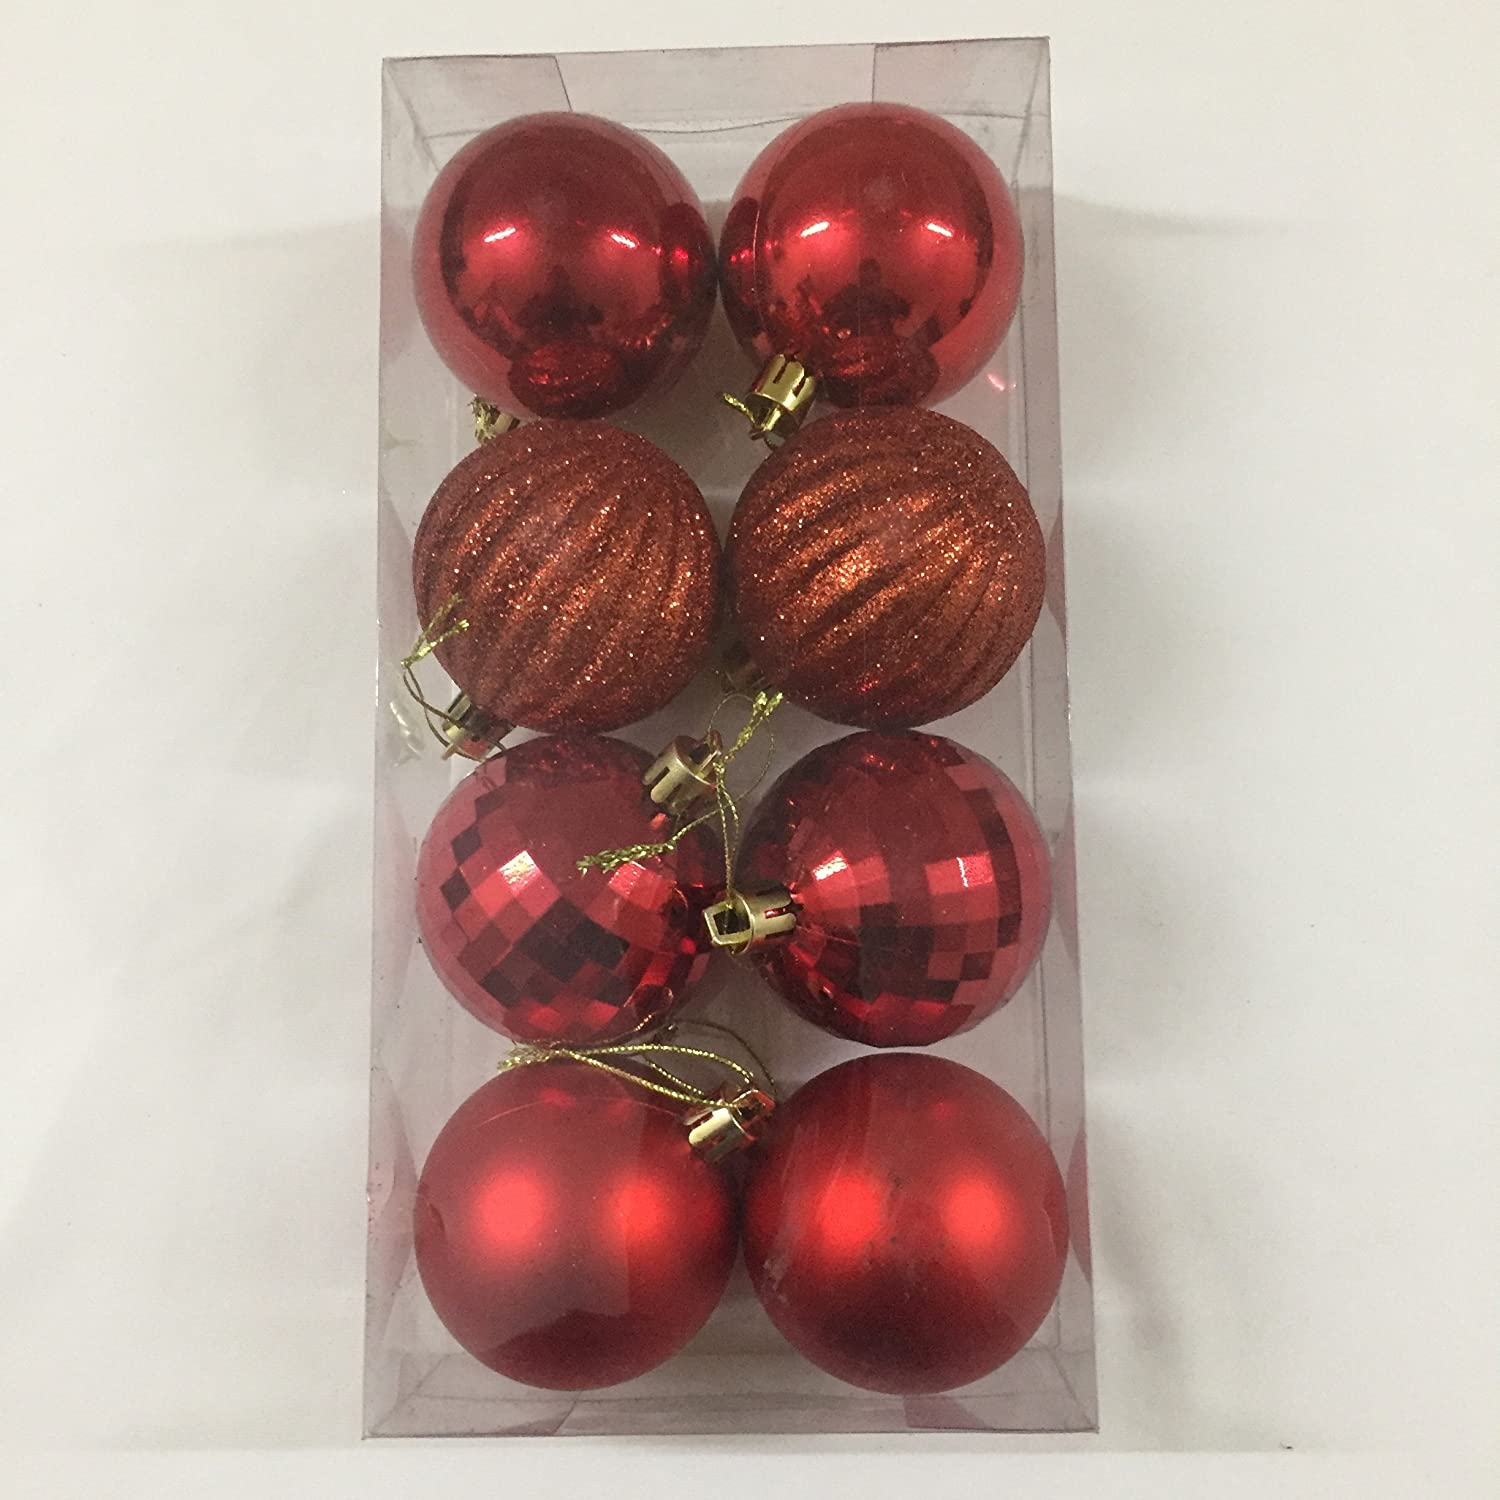 Buy 8 Pcs Medium Round Christmas Tree Balls Baubles Hanging Christmas Tree Decorations Red Silver Online At Low Prices In India Amazon In